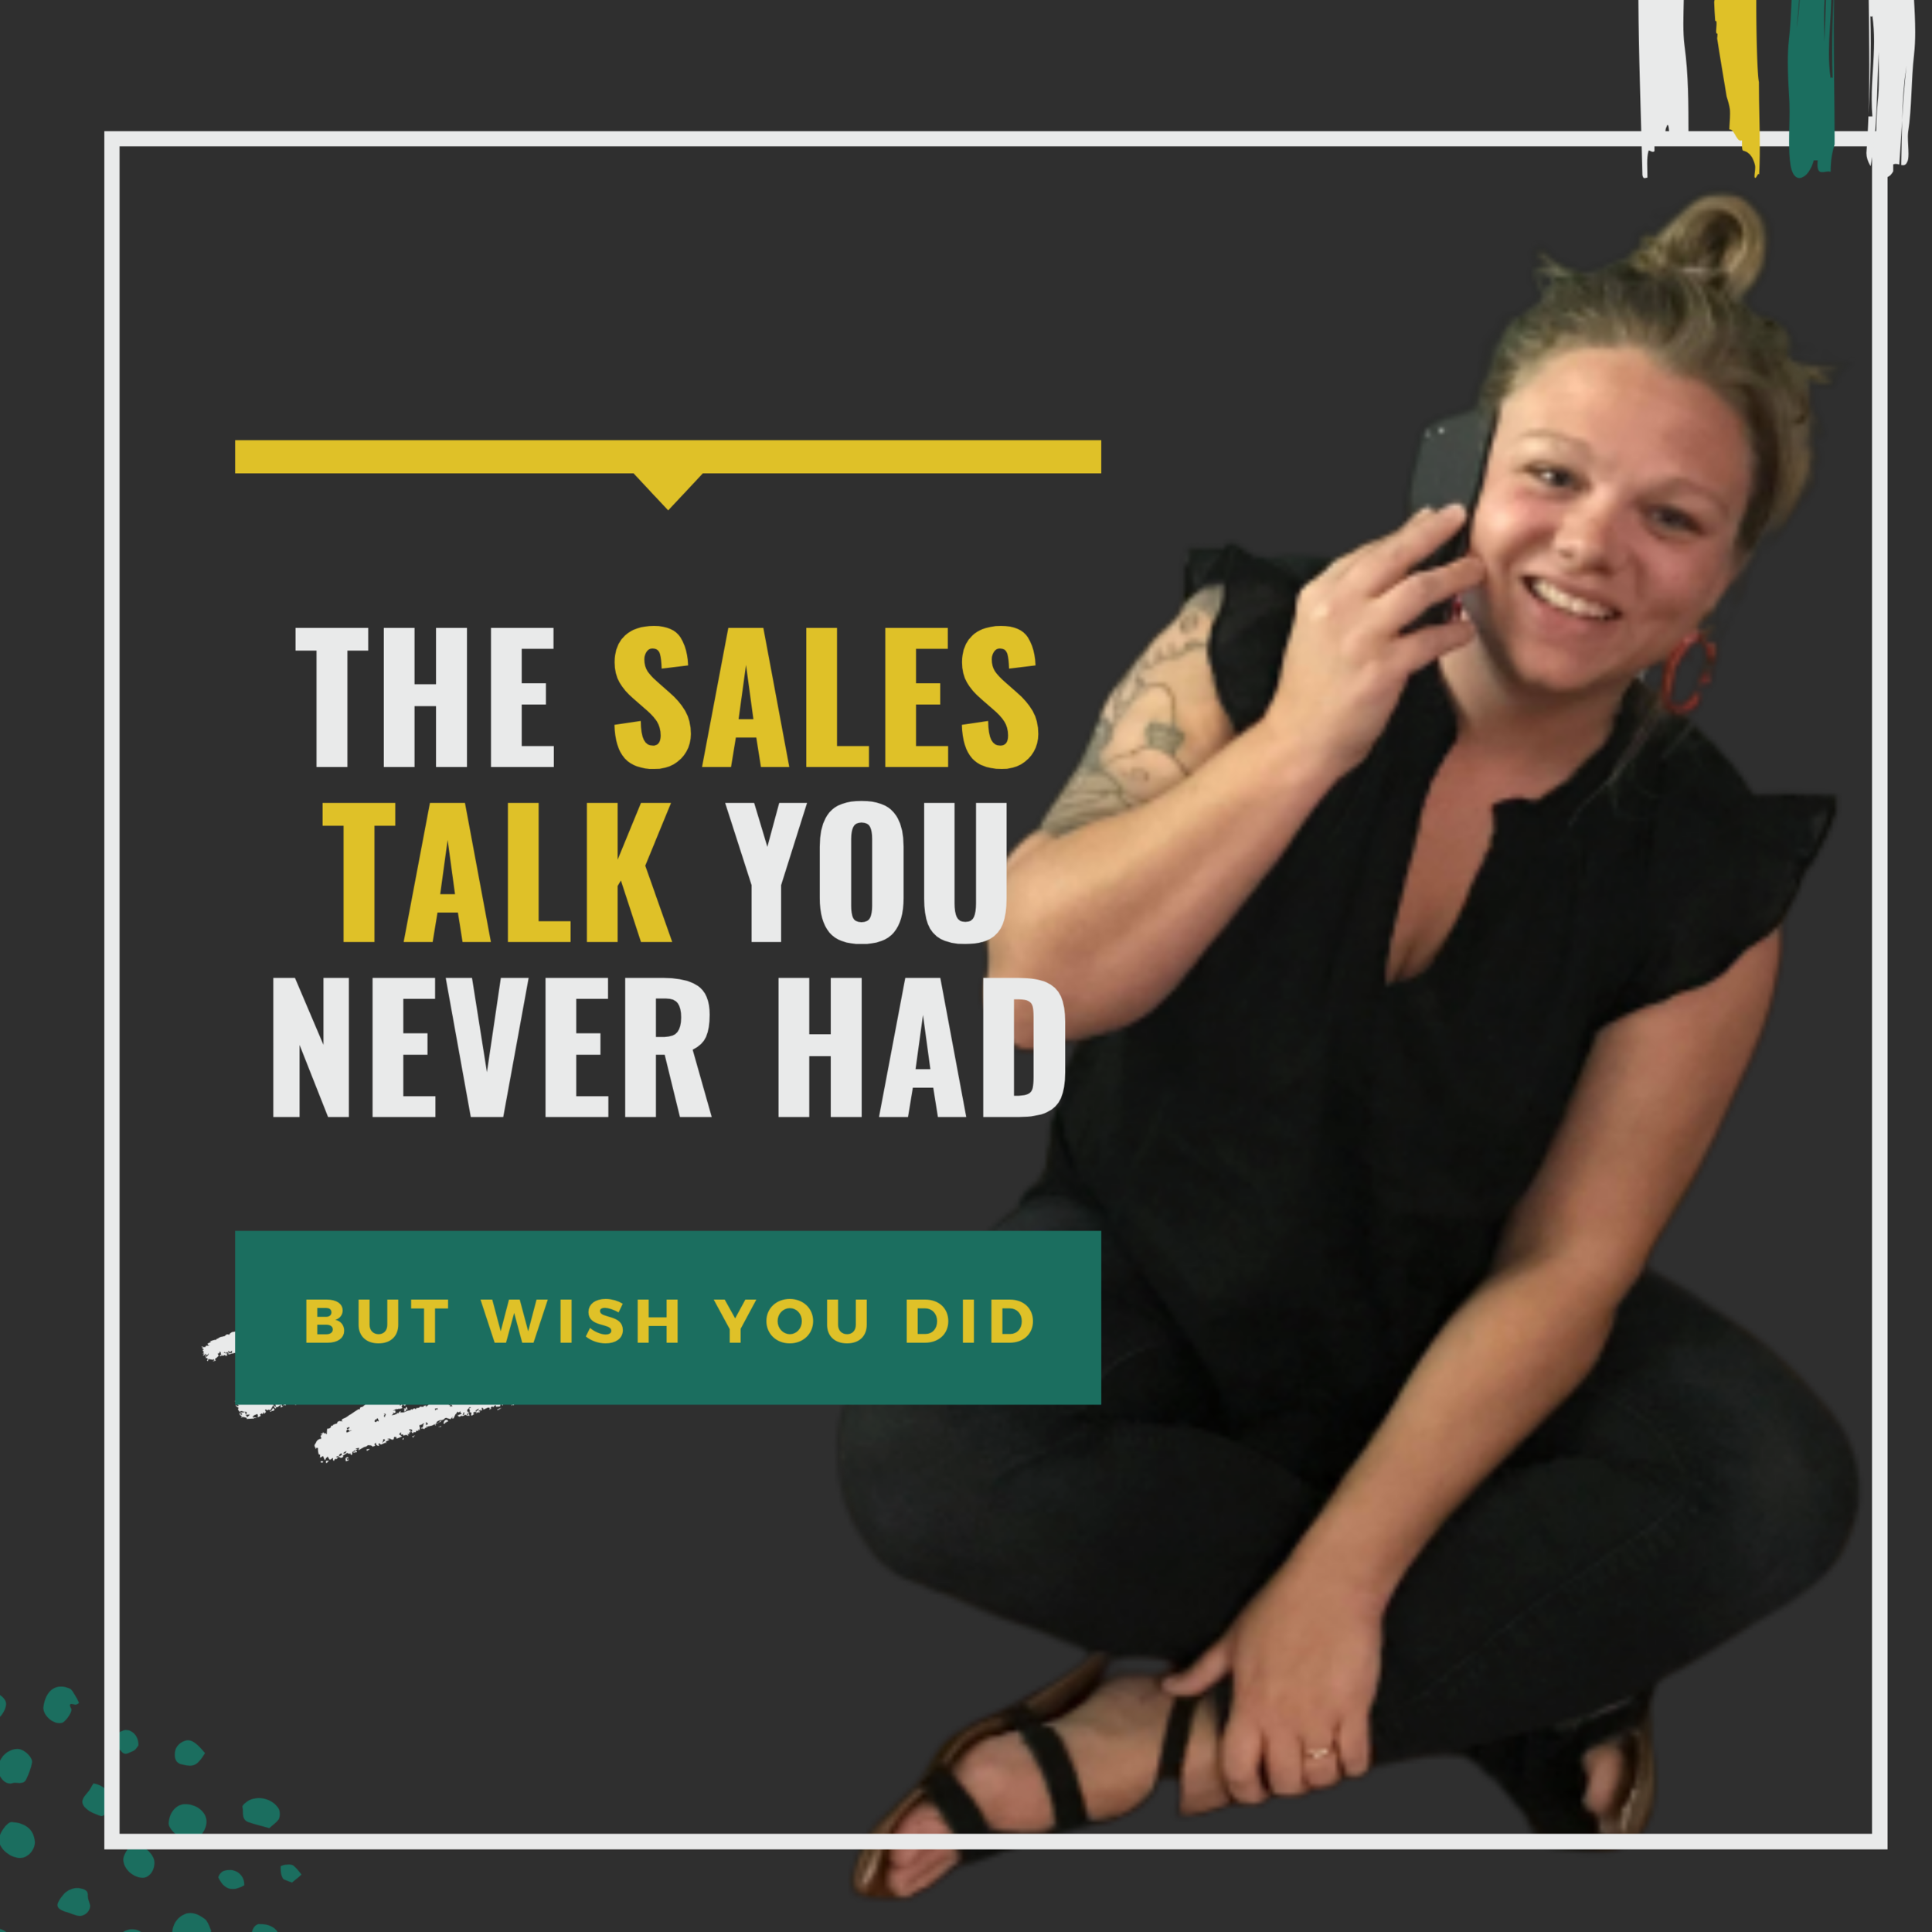 Sales Talk You never had but wish you did.png